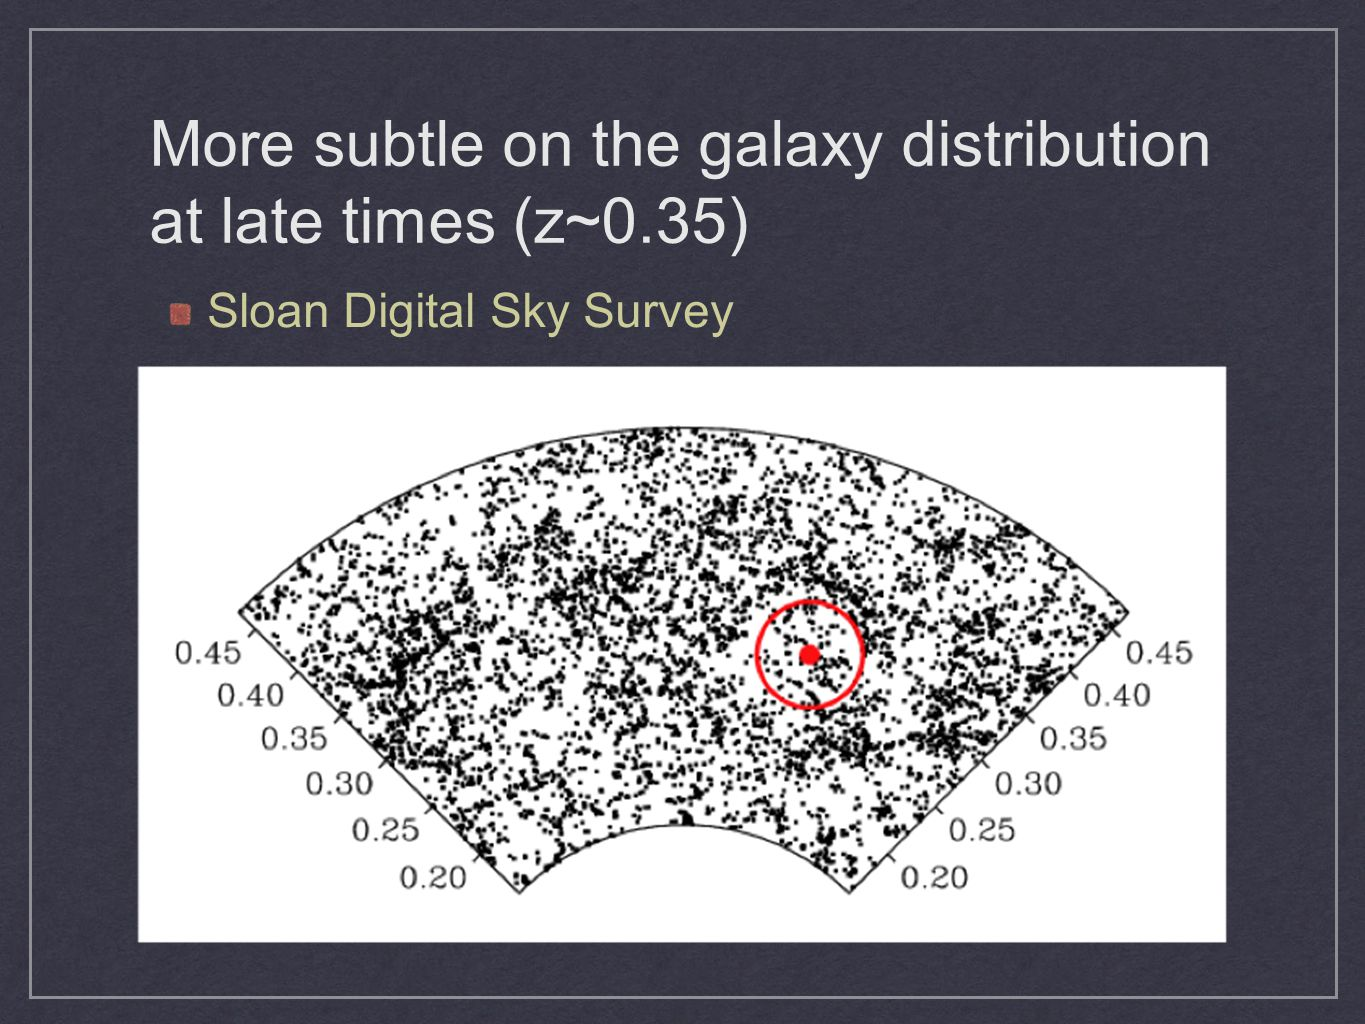 More subtle on the galaxy distribution at late times (z~0.35)